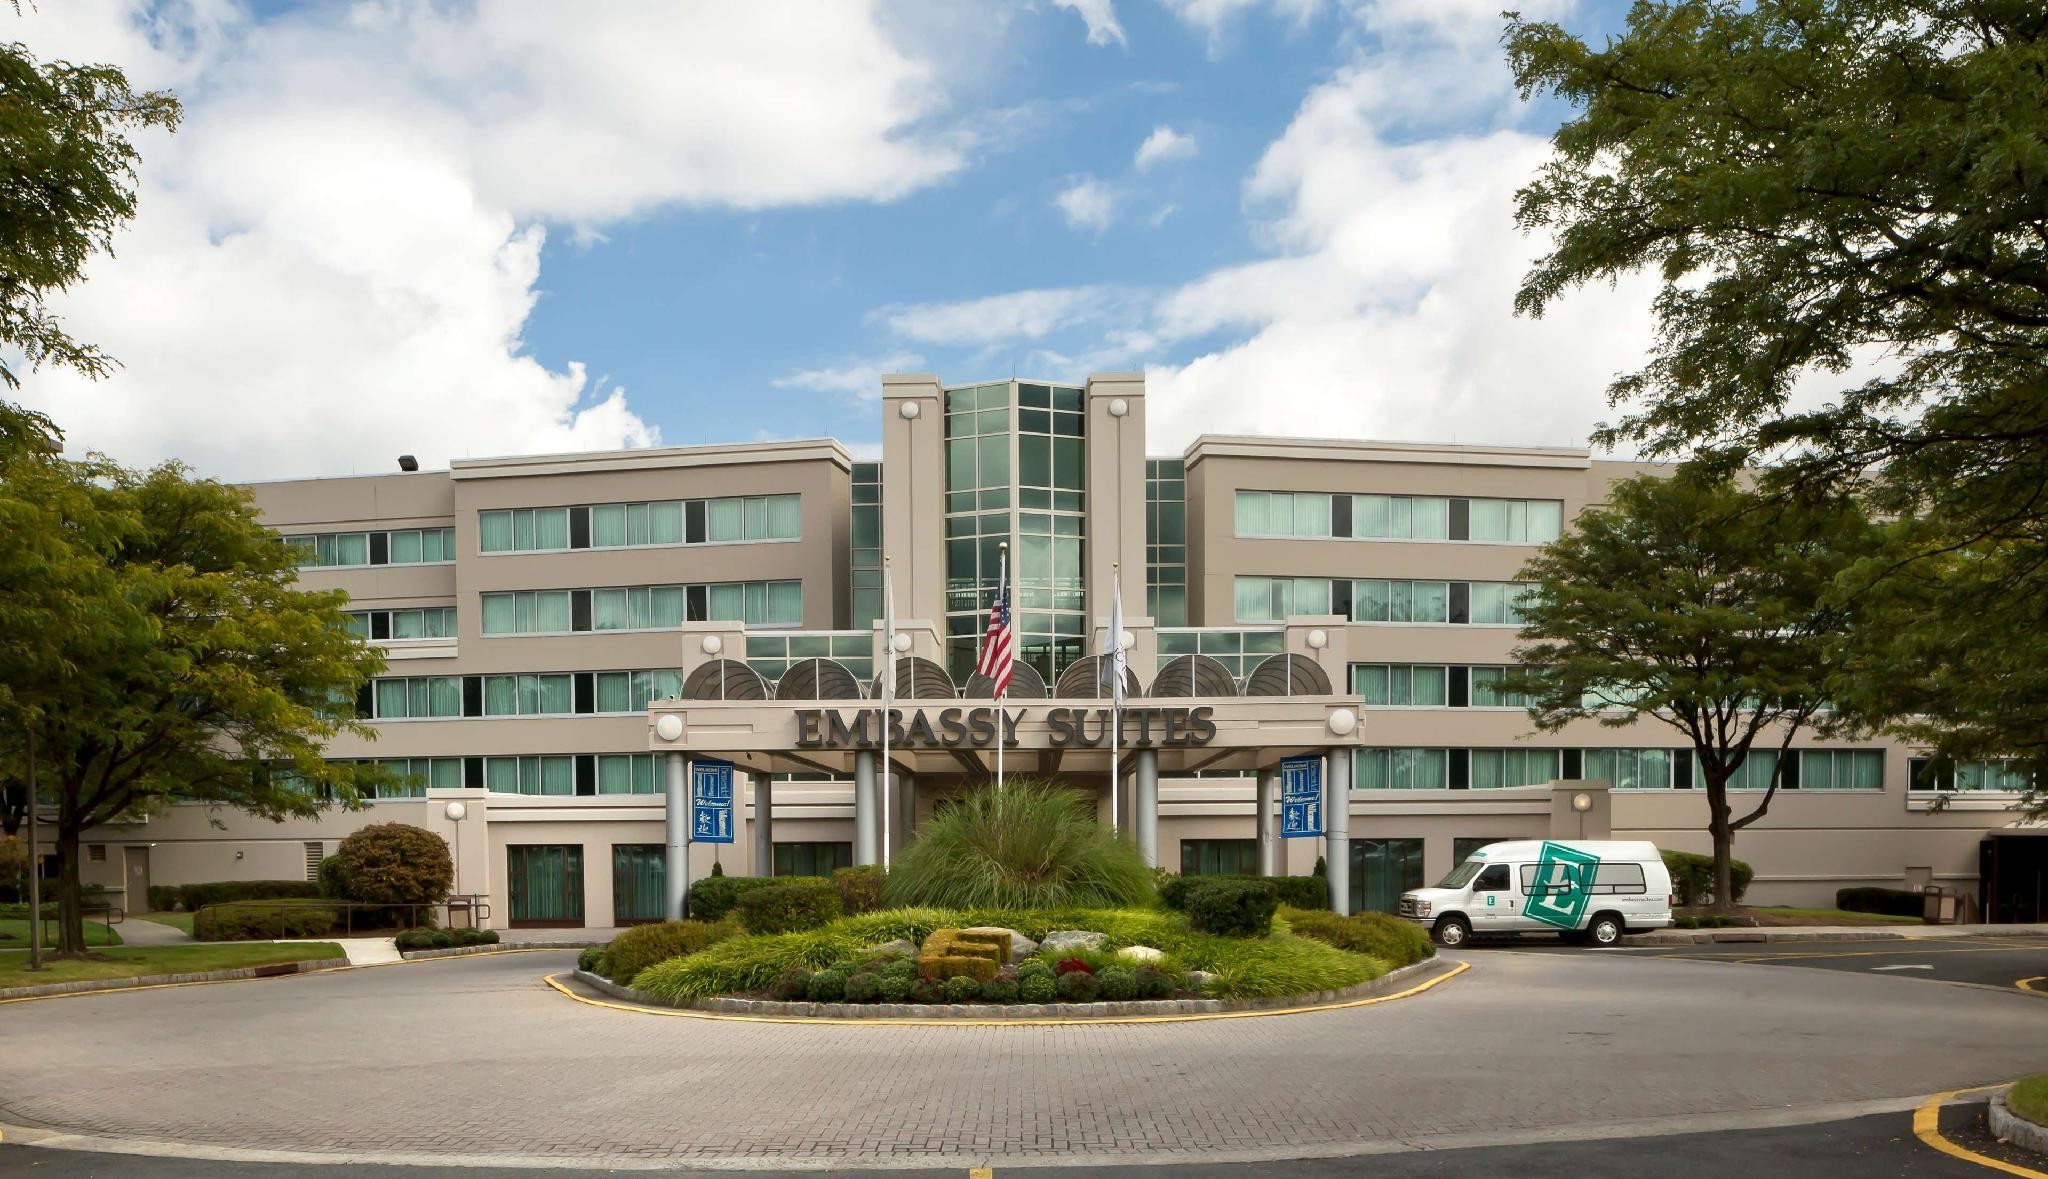 Embassy Suites Parsippany Hotel image